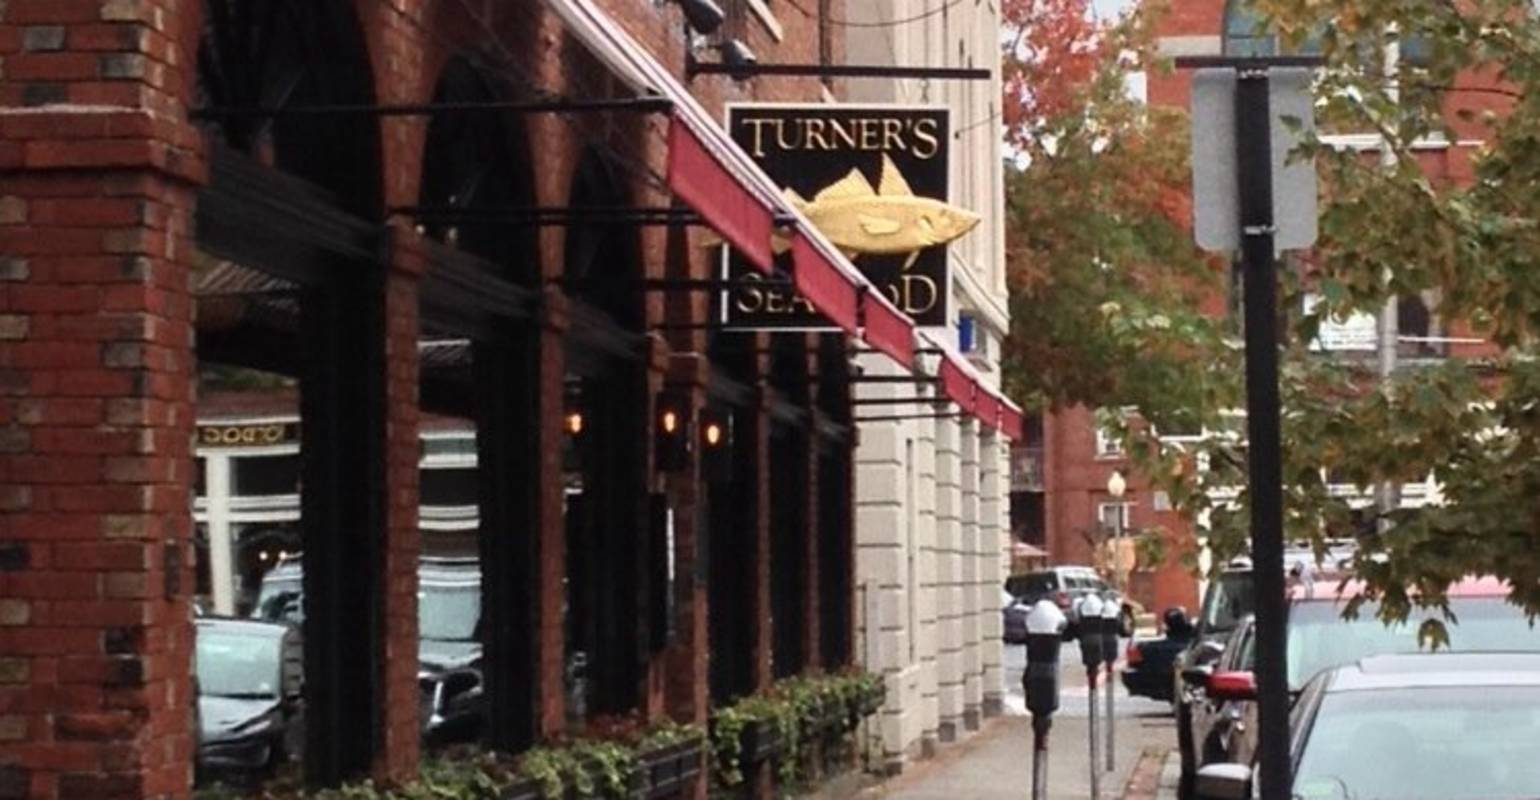 Turner's Seafood Grill & Market